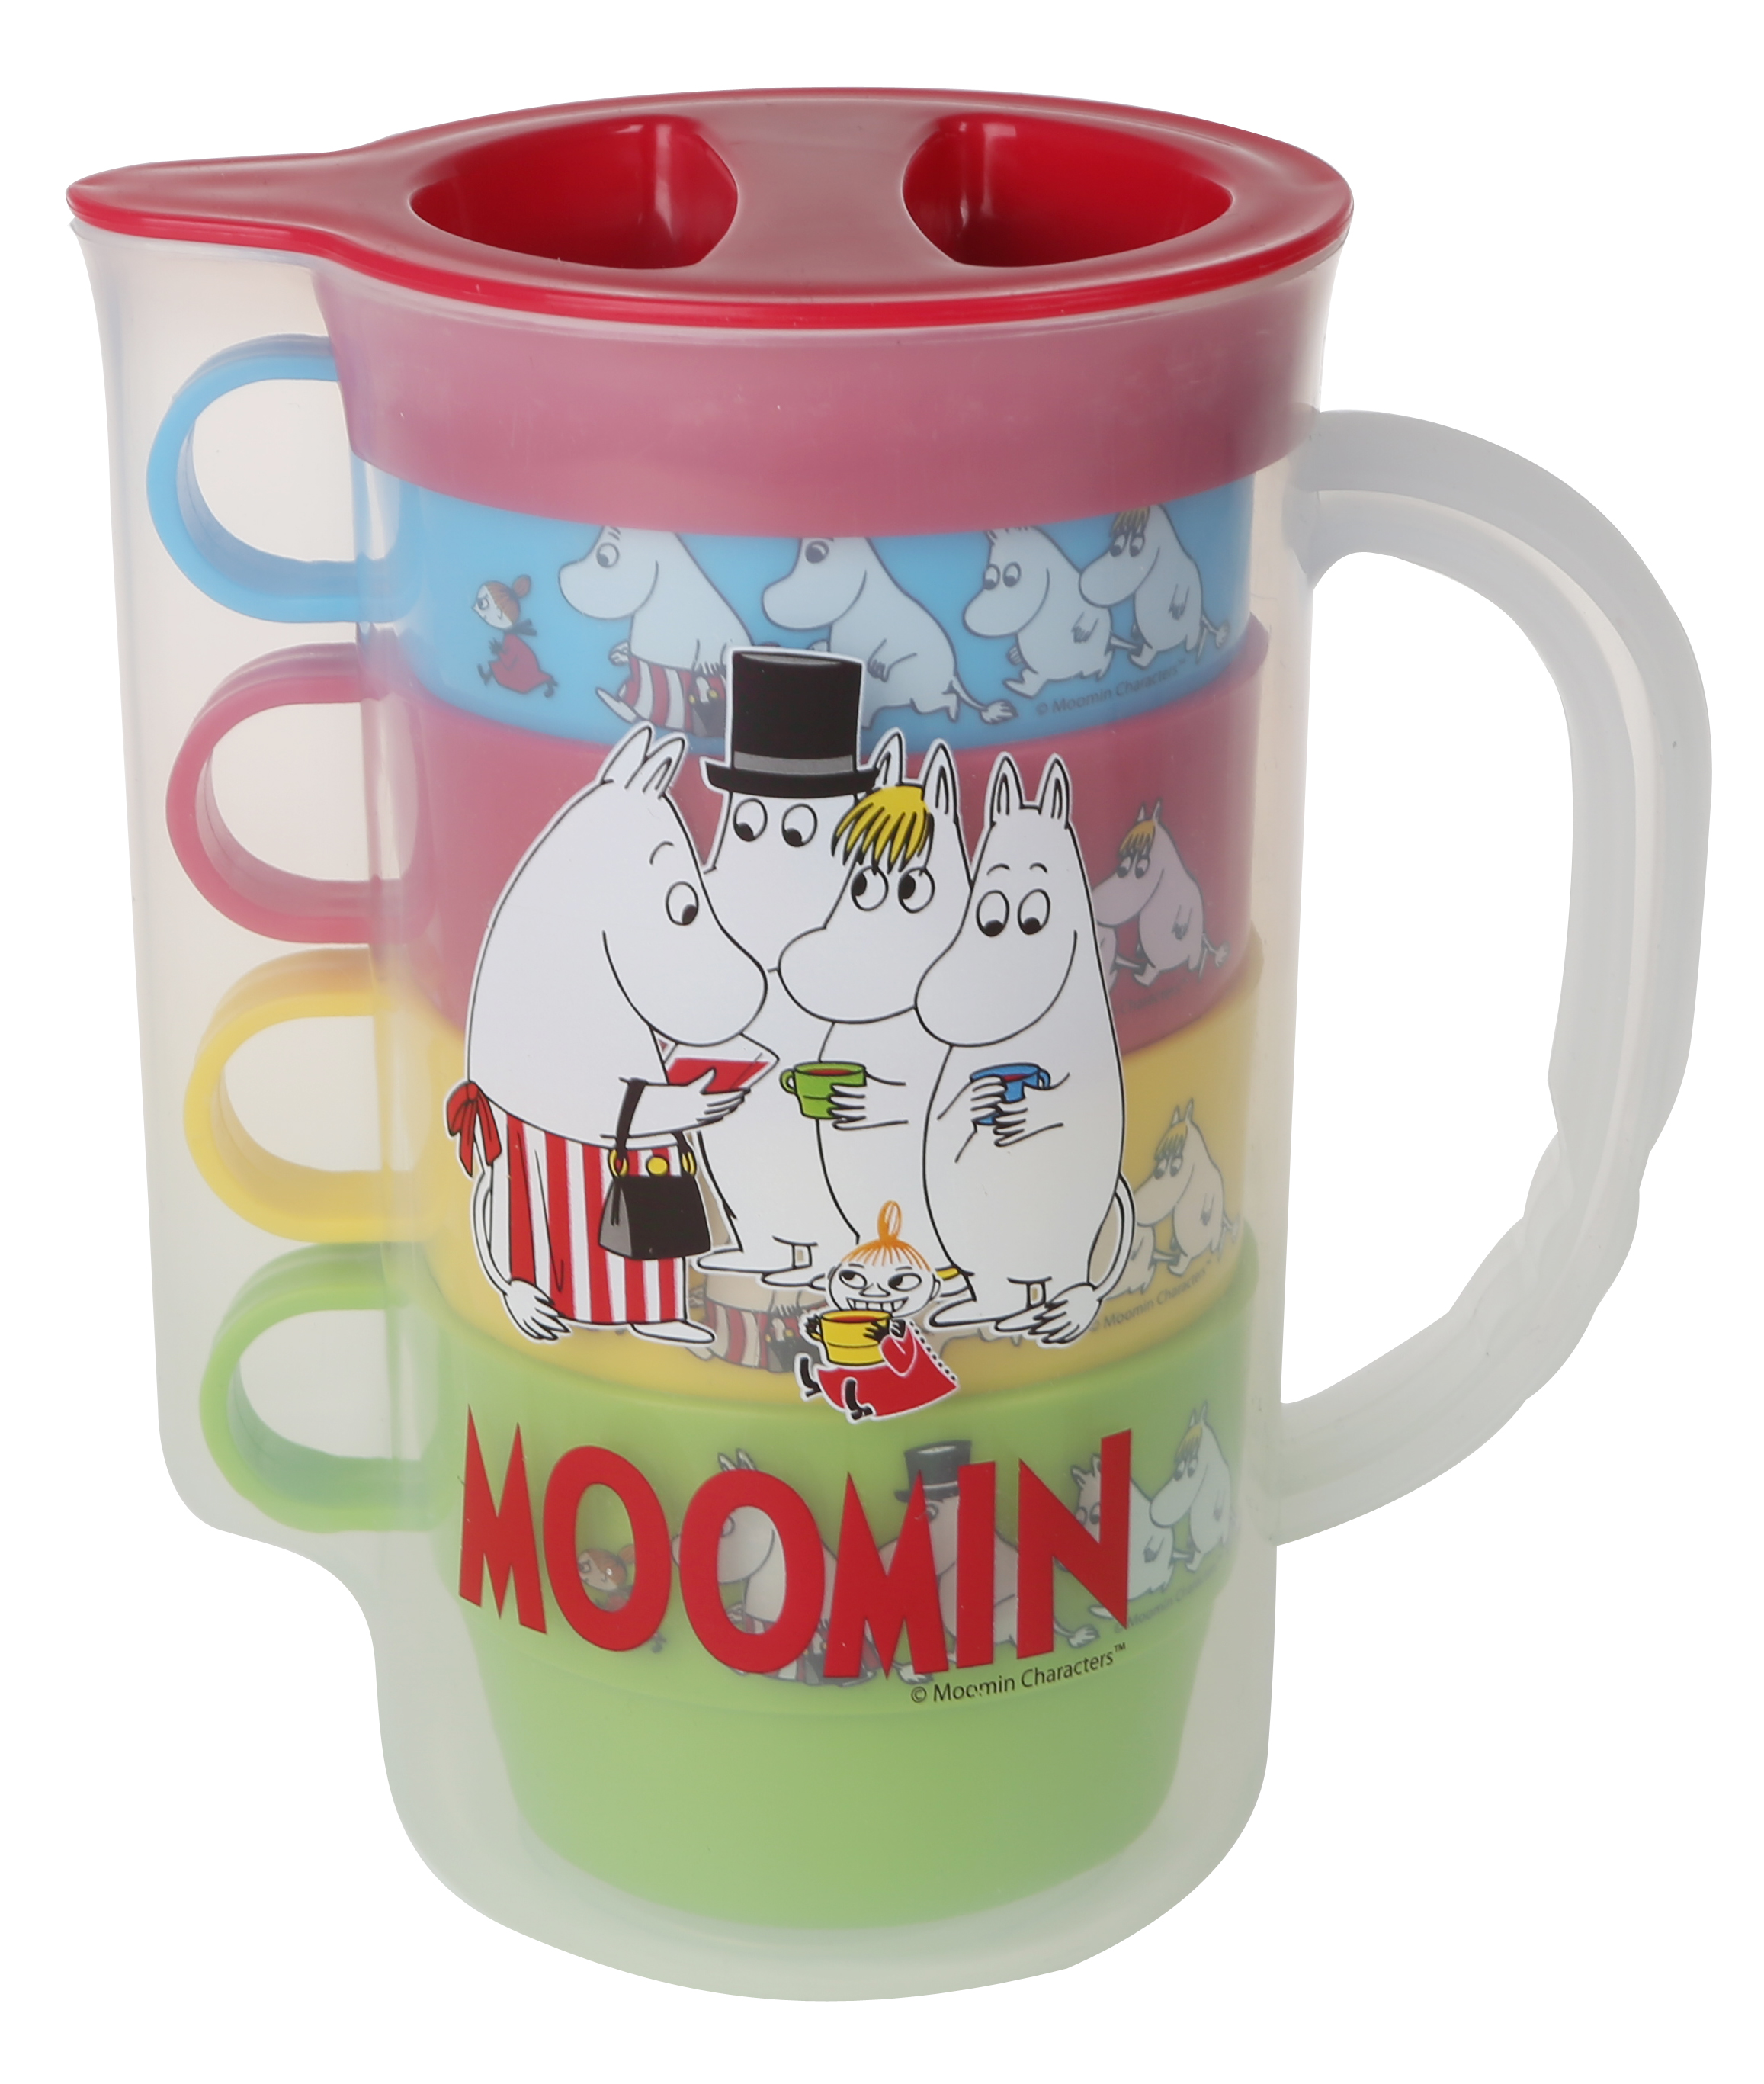 Martinex Moomin Picknick jug and 4 cups